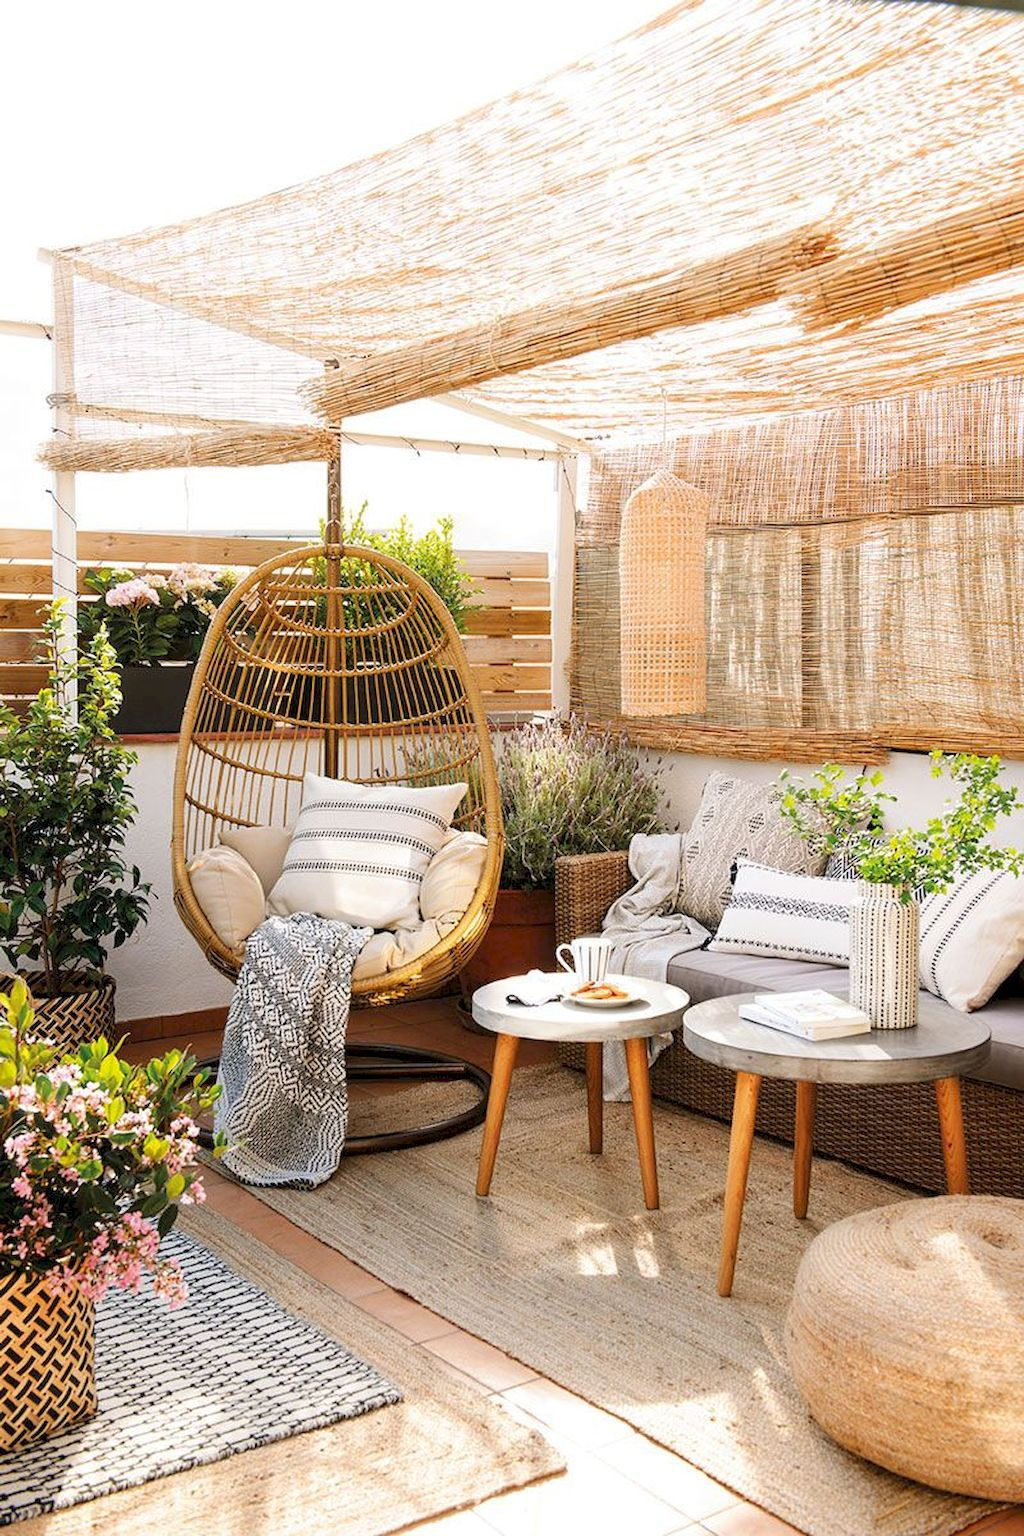 71 Wonderful Outdoor Patio Ideas Small Balcony Garden Patio Design Small Outdoor Patios